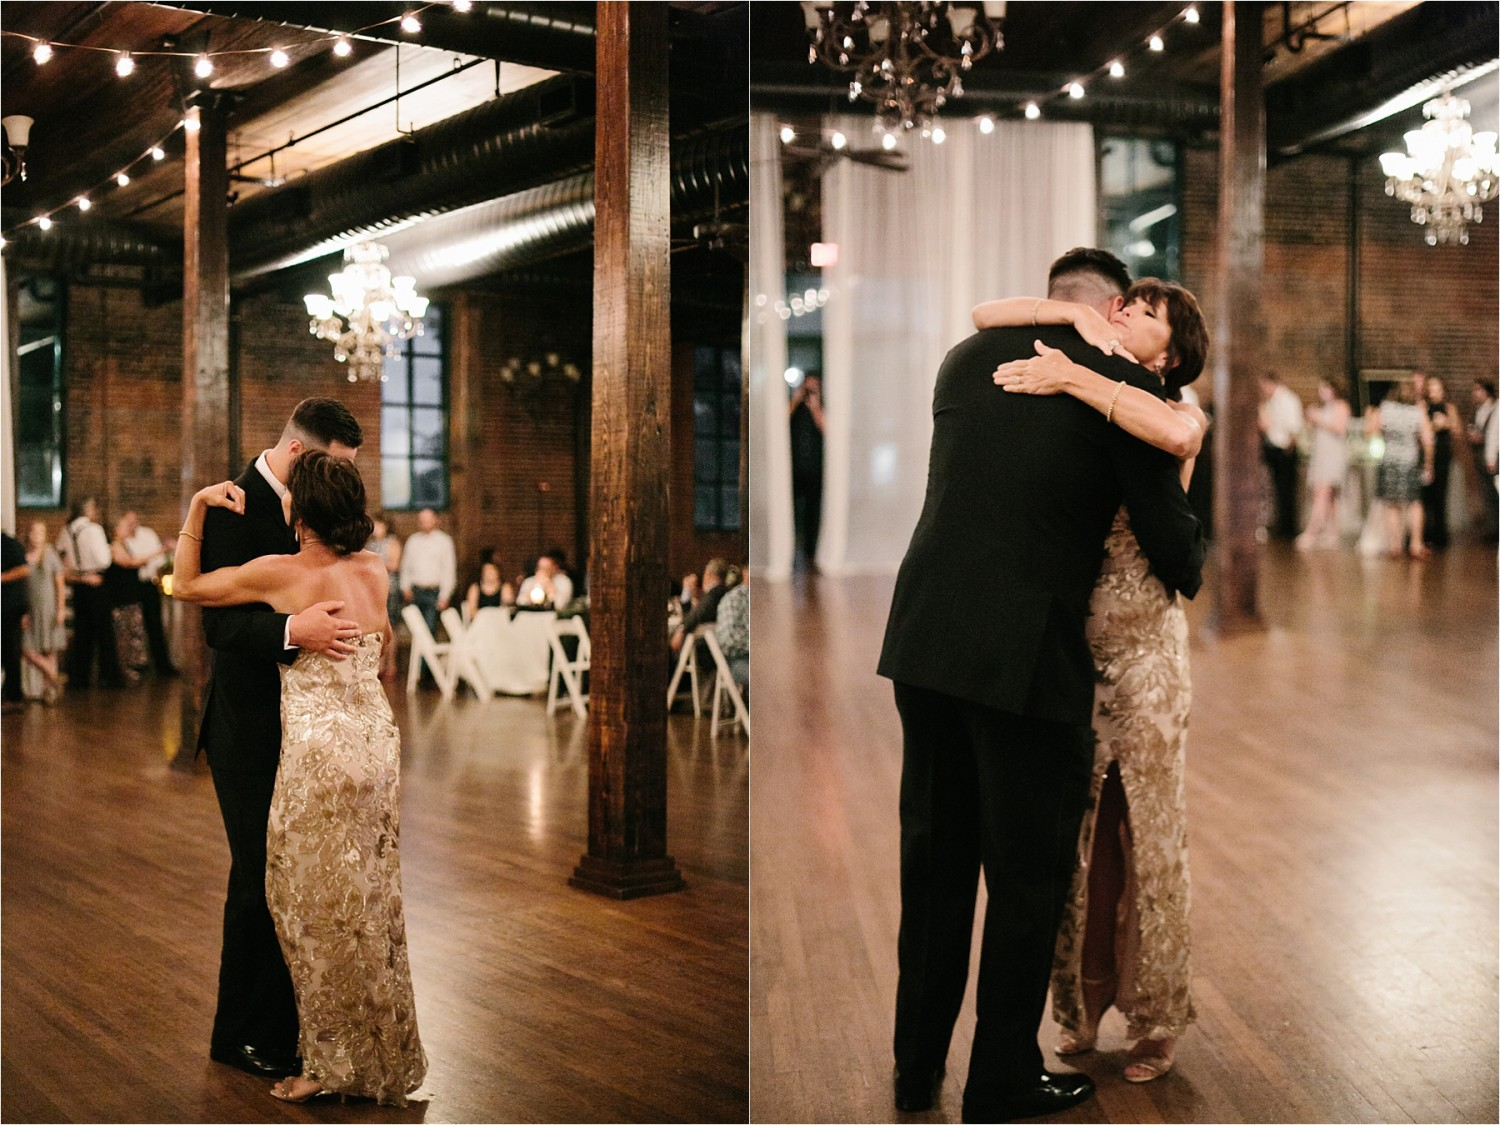 Holly + Jordan __ a black, gold, and greenery organic wedding at The Phoenix Ballroom in Waco, TX by North Texas Wedding Photographer Rachel Meagan Photography __ 70